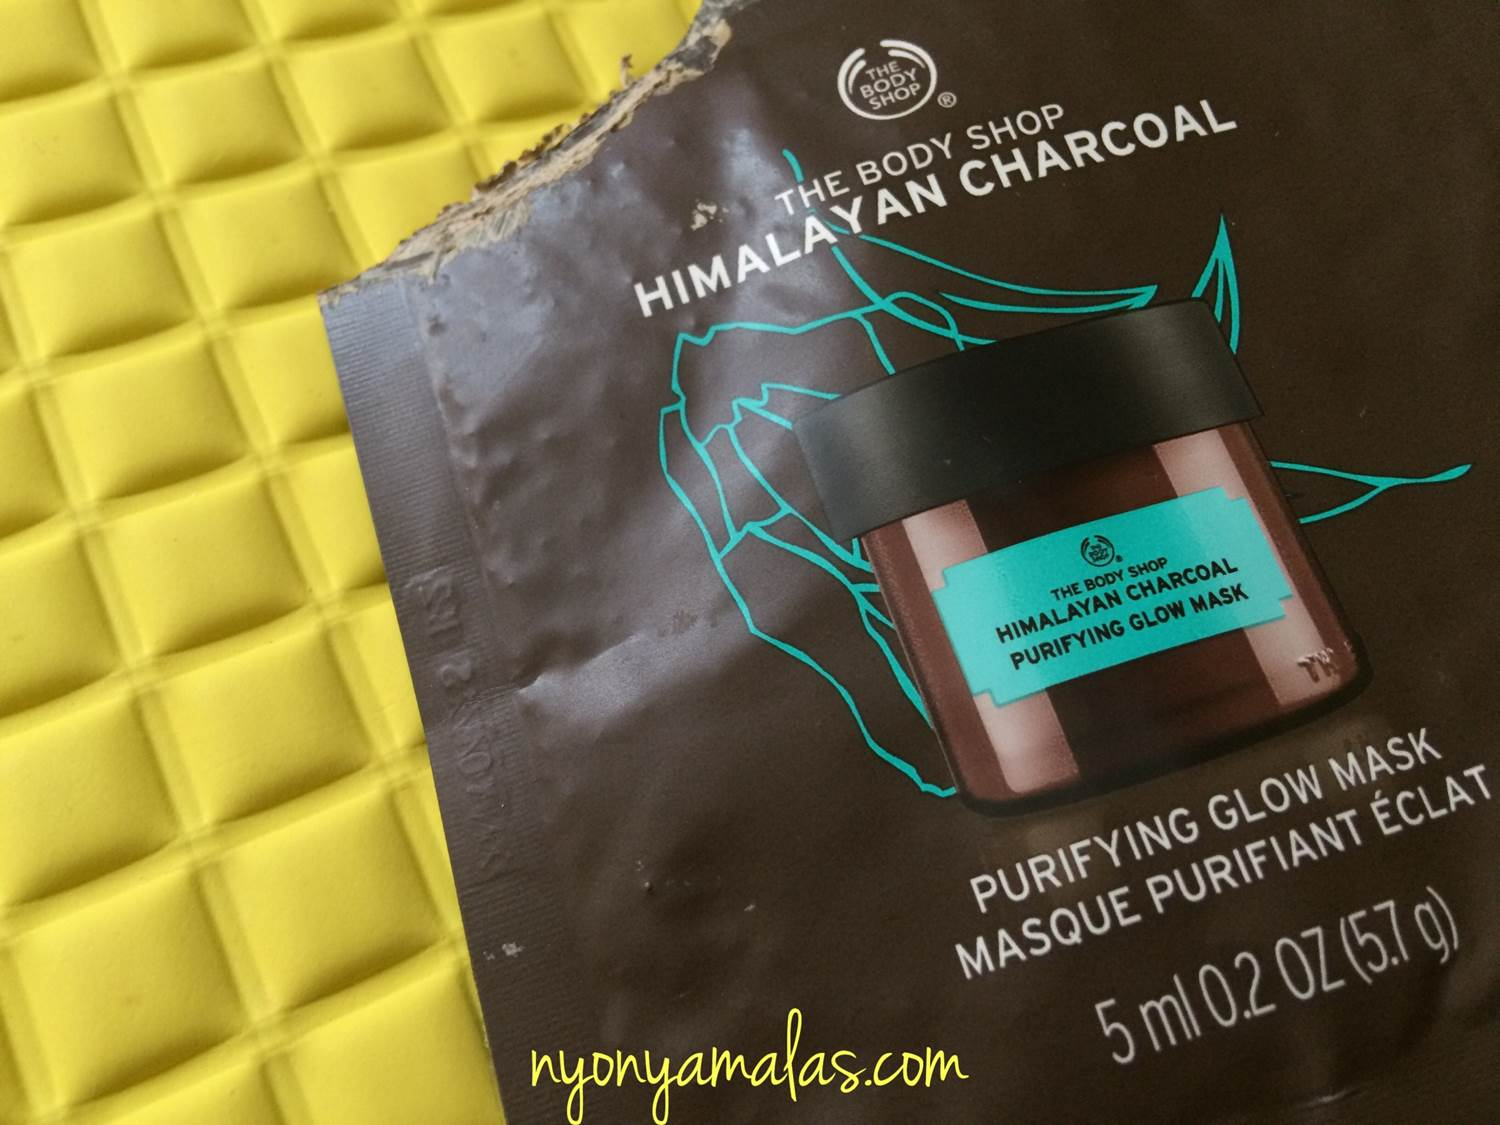 the-body-shop-himalayan-charcoal-mask